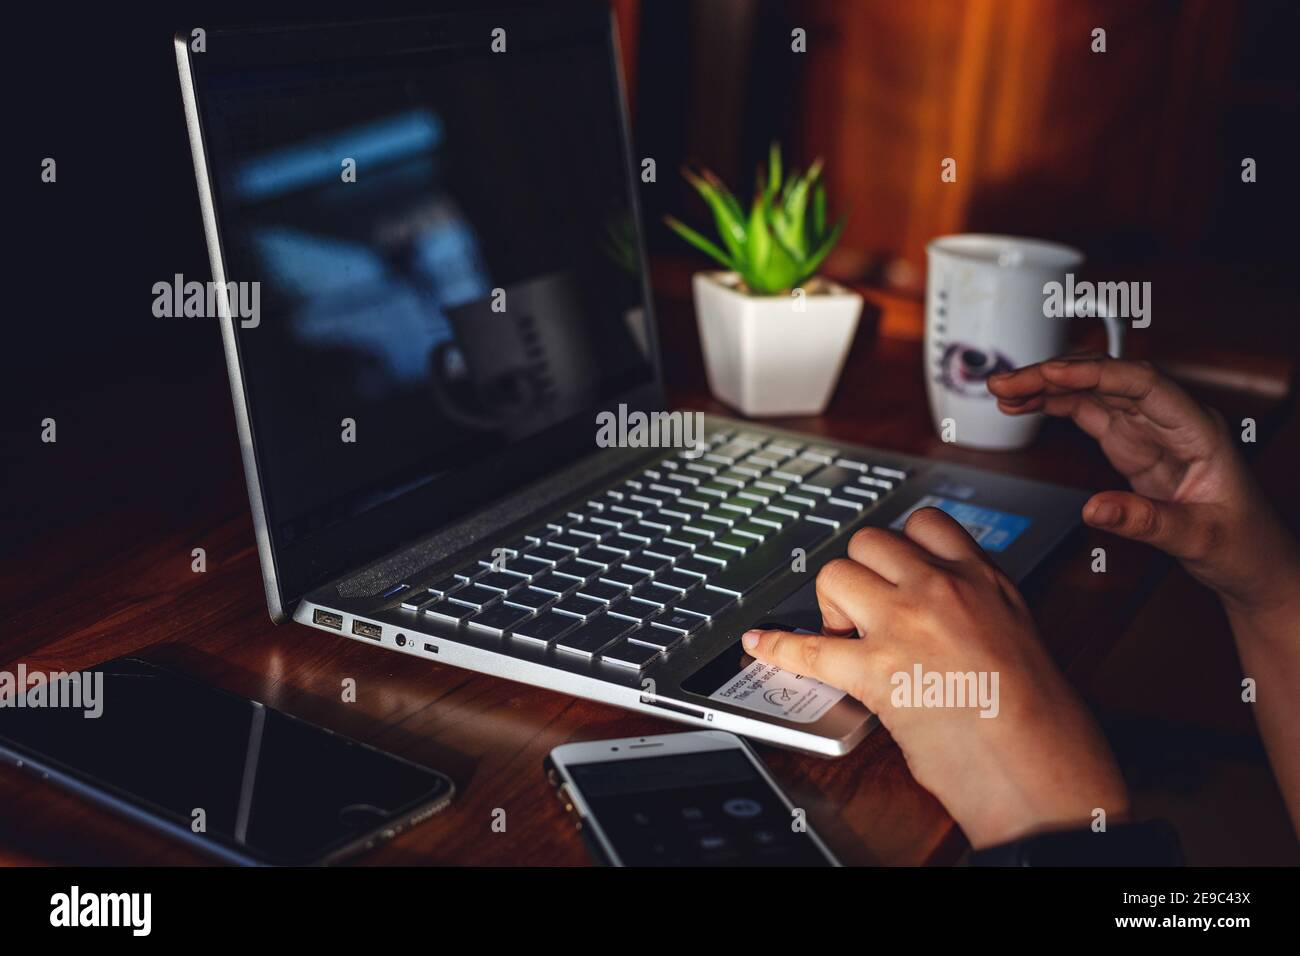 IT professional woman working from home with Laptop and Phones with a hot cup of coffee beside and a green plant Stock Photo